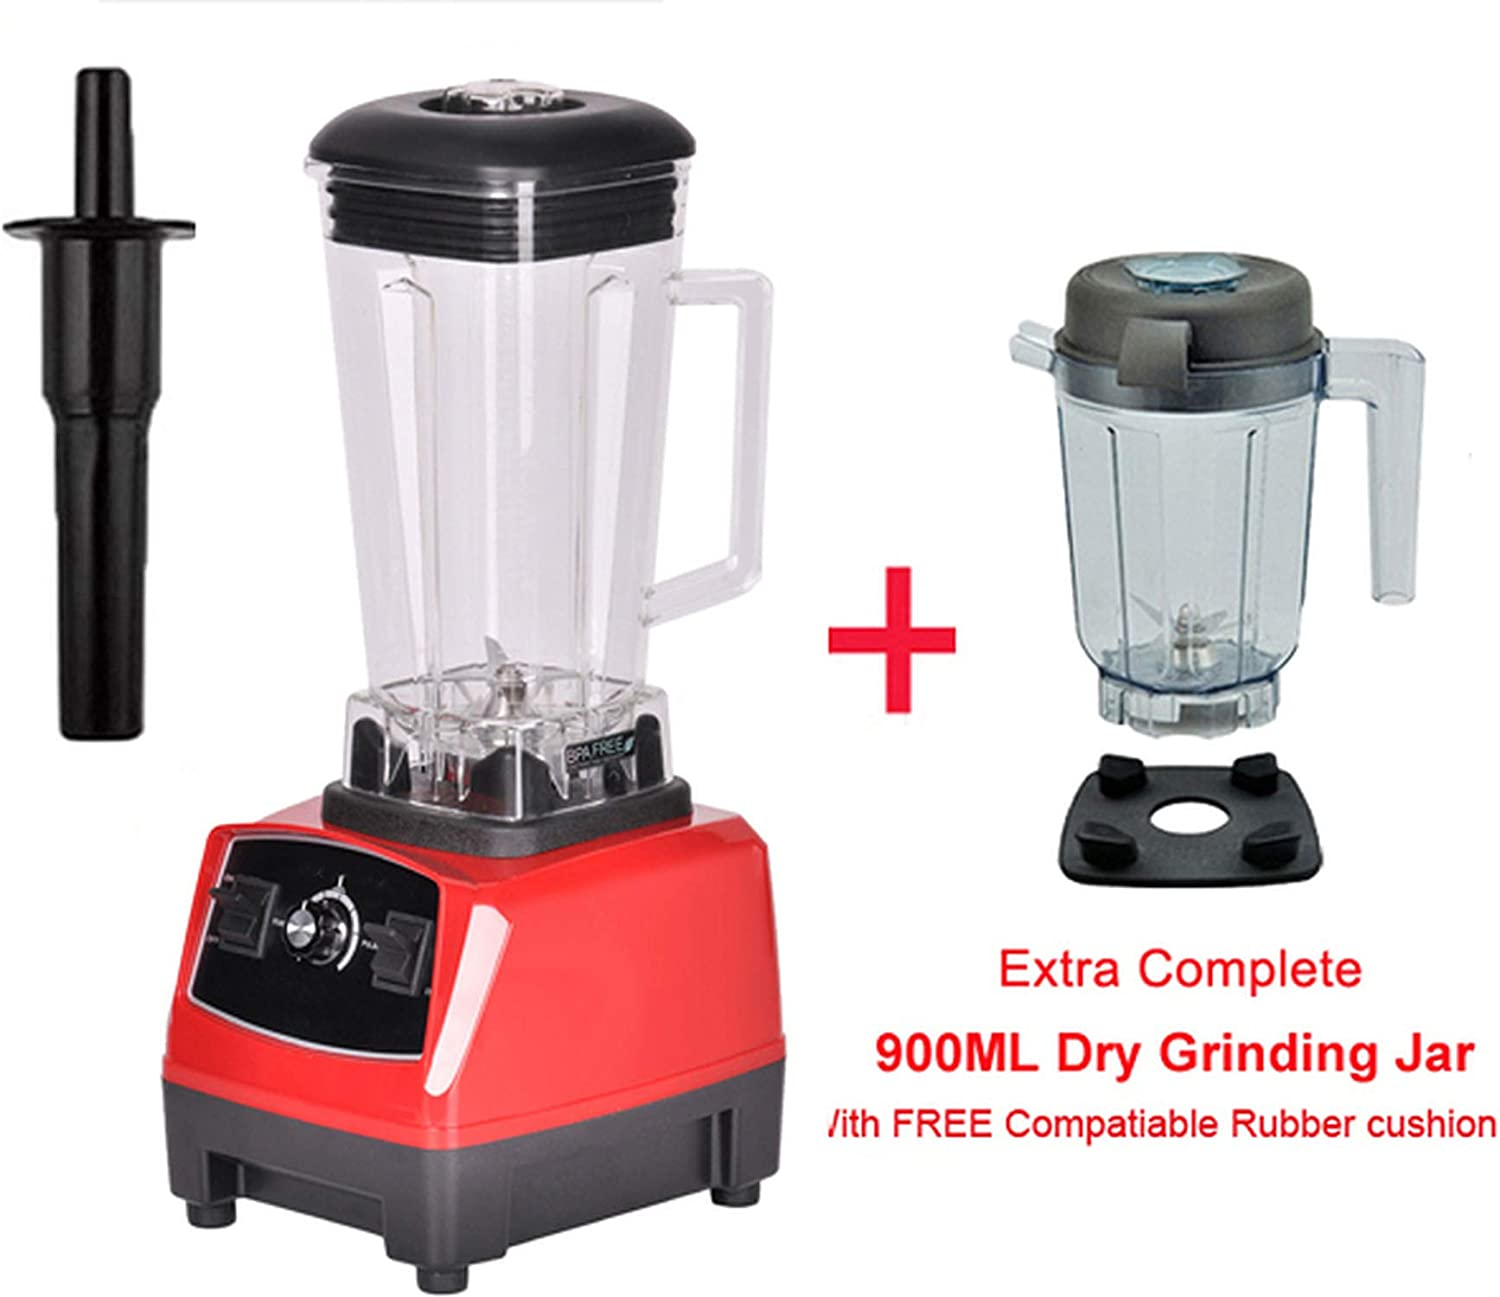 2200W BPA FREE 3HP 2L G5200 high power commercial home professional smoothies power blender food mixer juicer fruit processor,RED EXTRA DRY JUG